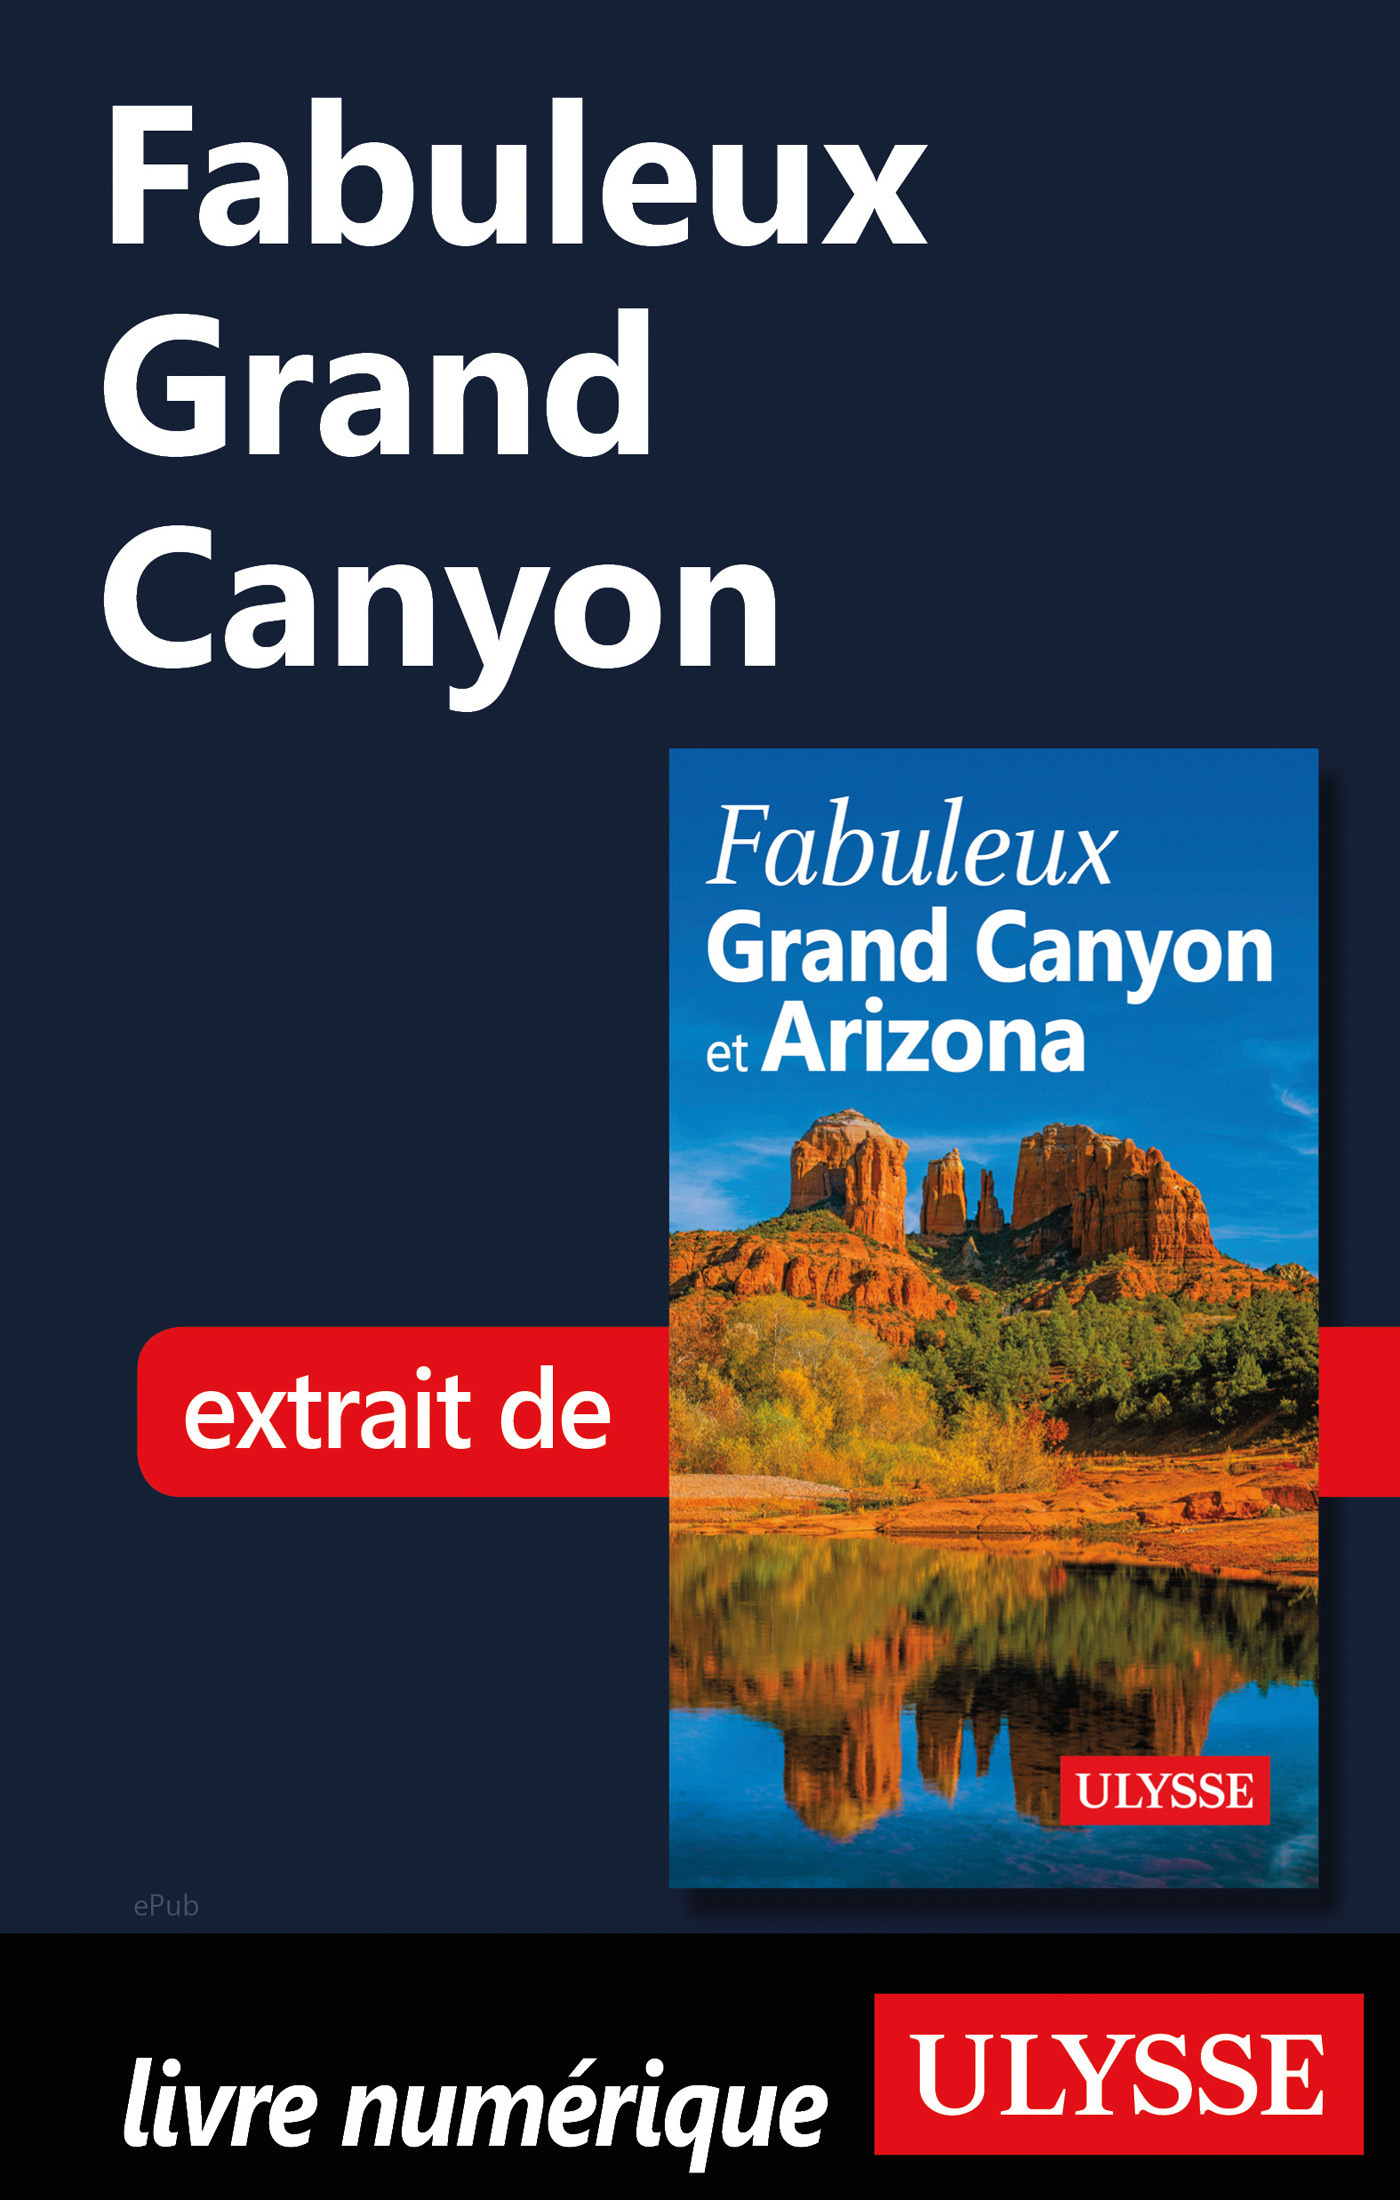 Fabuleux Grand Canyon